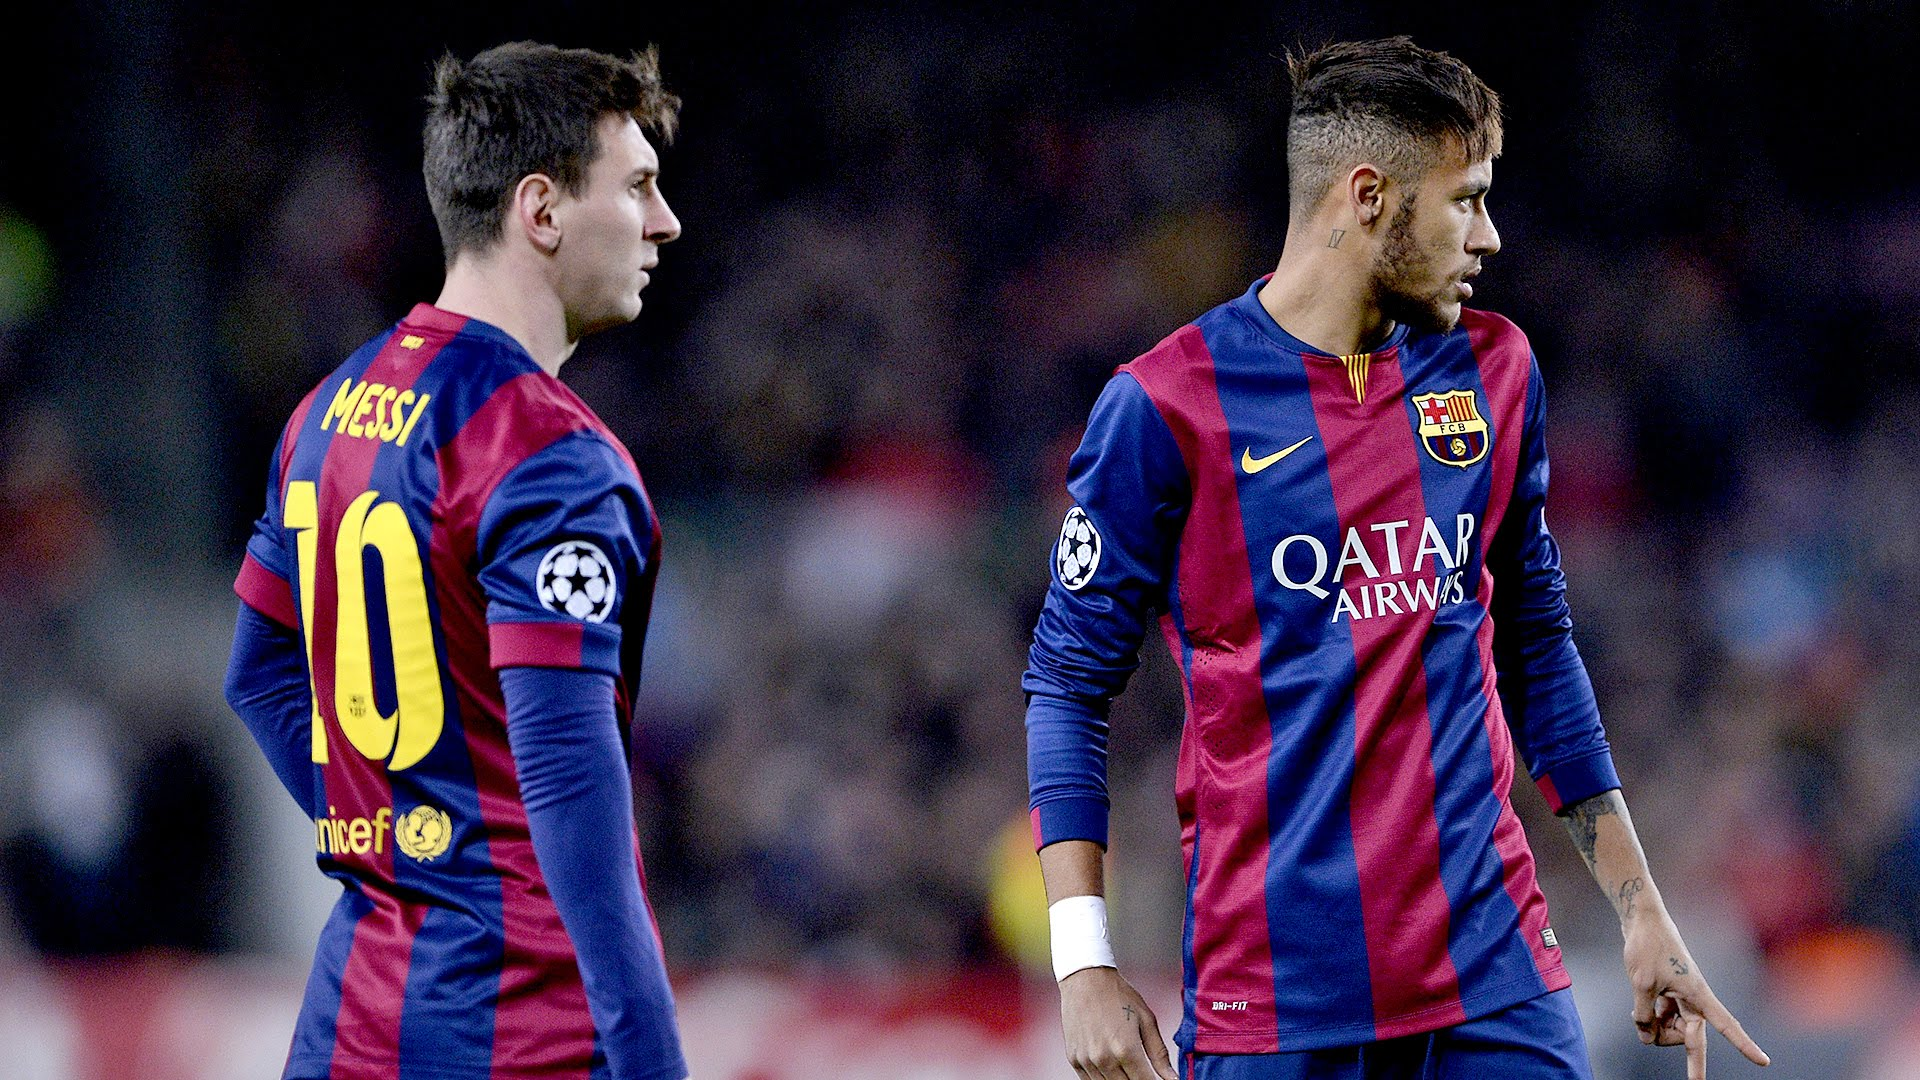 Neymar And Messi Wallpaper